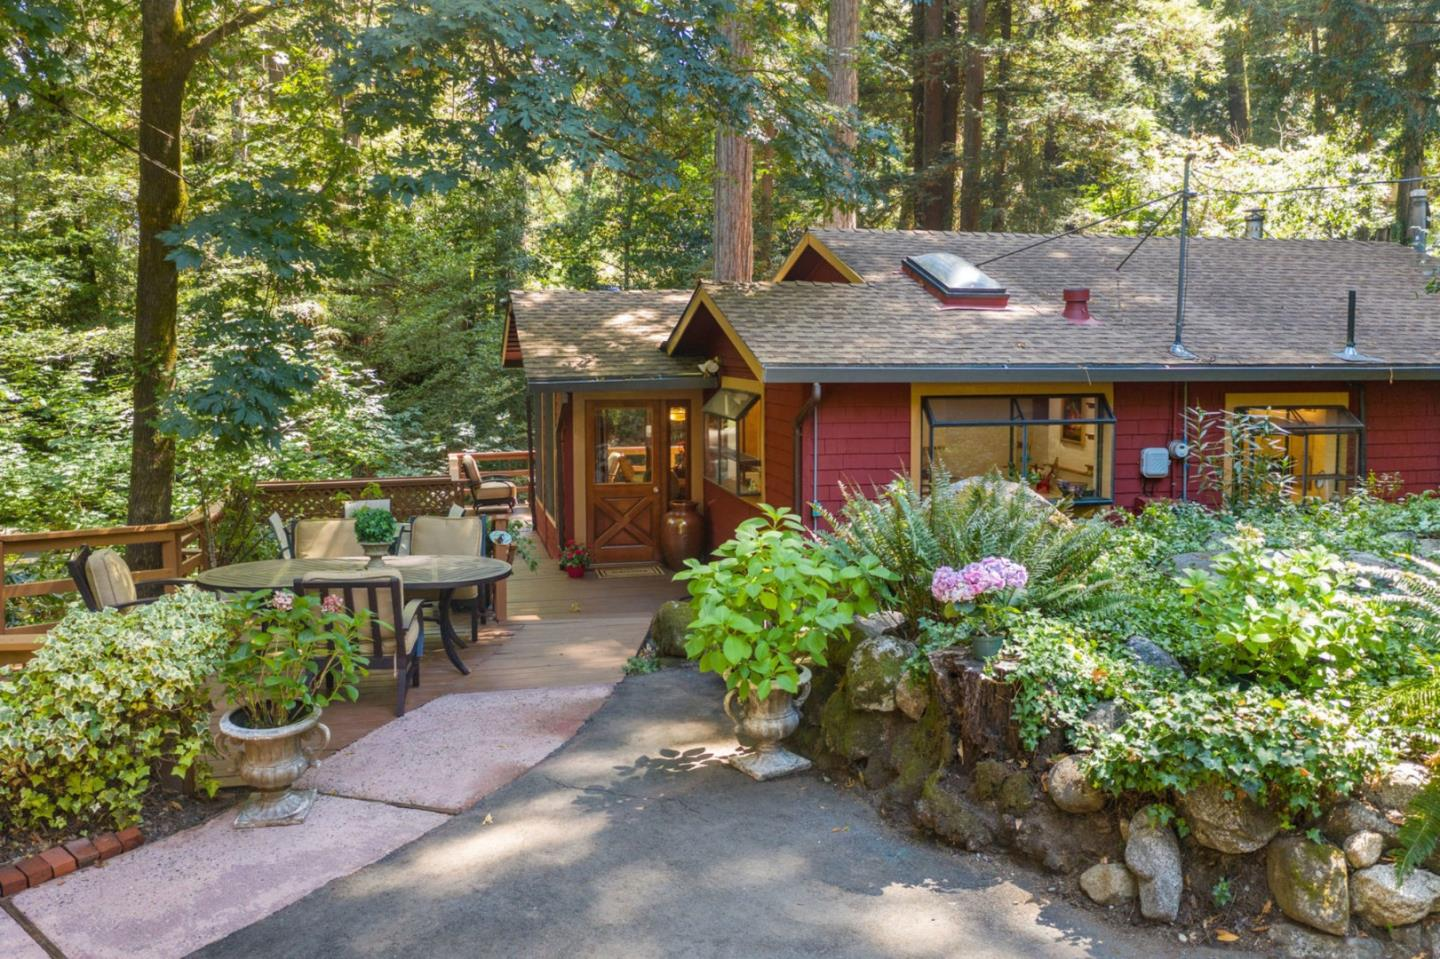 Welcome to your peaceful creekside home in our gorgeous Santa Cruz mountains! This 4 bed, 2.5 bath home is in a quiet neighborhood set nicely back from the street providing much privacy adding to the zenlike character this property undoubtedly portrays. Living room has old growth redwood paneling, and a fireplace giving the home an even cozier feel. Imagine yourself on a rainy night enjoying the sounds of the rainfall onto your skylights. Large dual pane windows in the kitchen and dining room offer lovely views so you can enjoy the beauty of the outside right in to your home as you prepare dinner or entertain guests. Kitchen provides plenty of counter space for cooking and great storage in order to keep your spaces tidy! The gazebo and private deck are both wonderful places to enjoy a cup of tea with a book as you listen to the calm sounds of the creek all right in your own backyard. Make this property your forever home or a dreamy weekend getaway retreat! Come see for yourself!